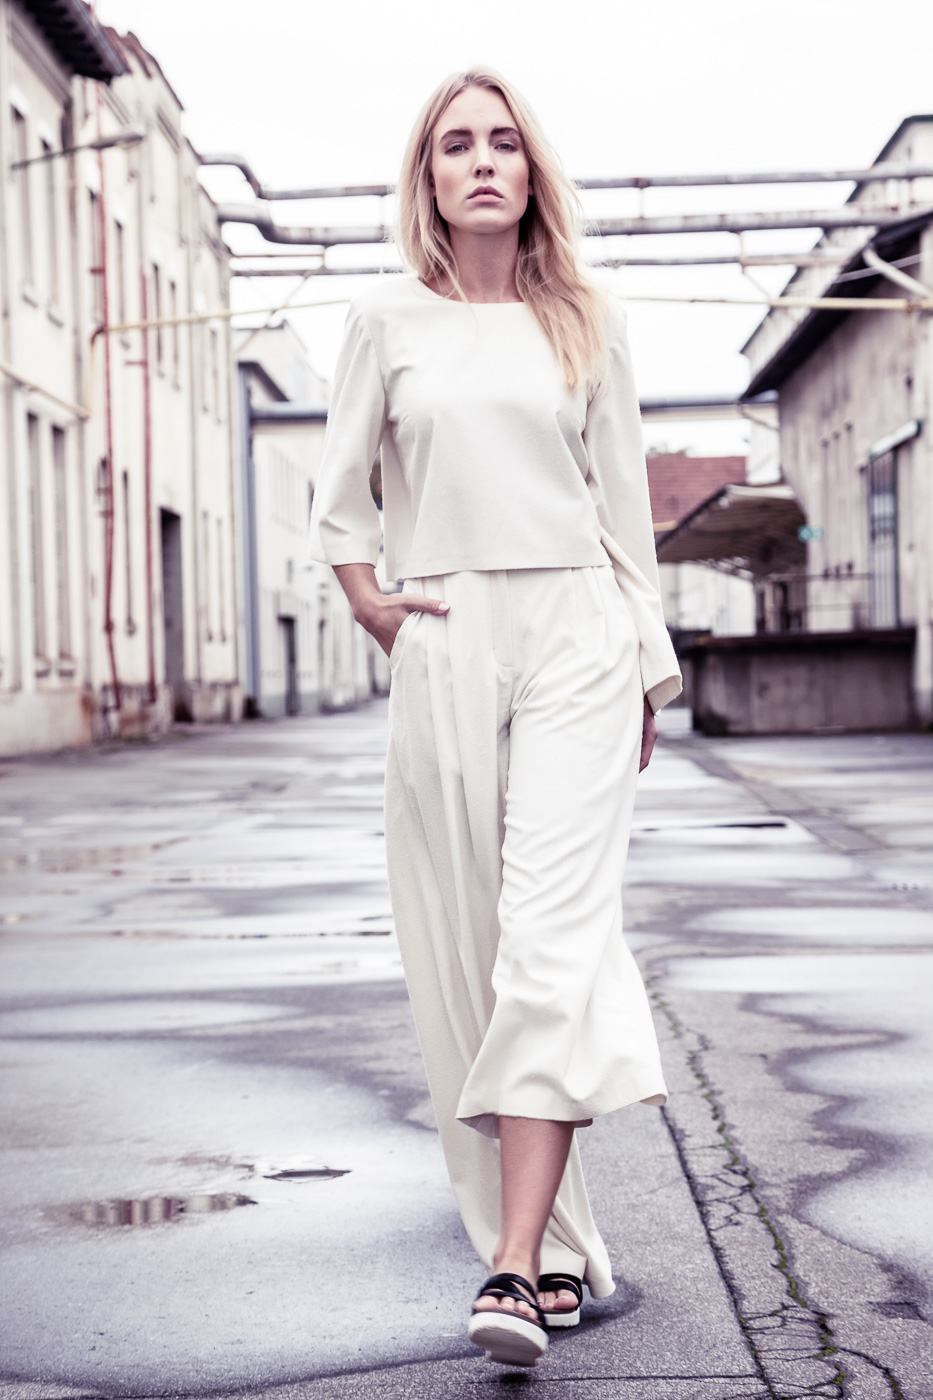 Lookbook Lena Hasibether Spring/Summer 2016 Bielefeld